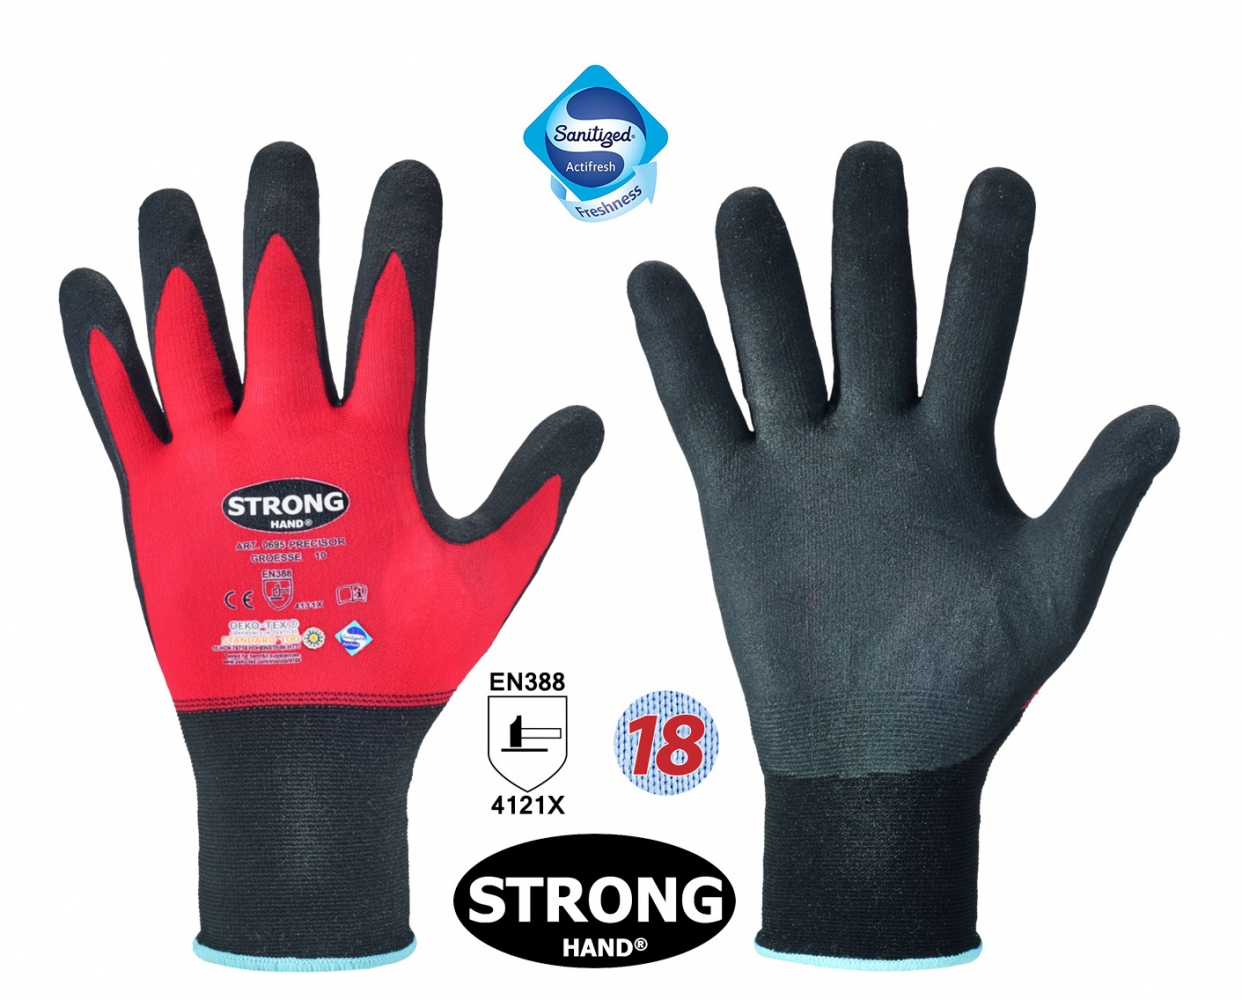 pics/Feldtmann/2019/Handschuhe/stronghand-0695-precisor-nitrile-safety-gloves-red-sanitized.jpg